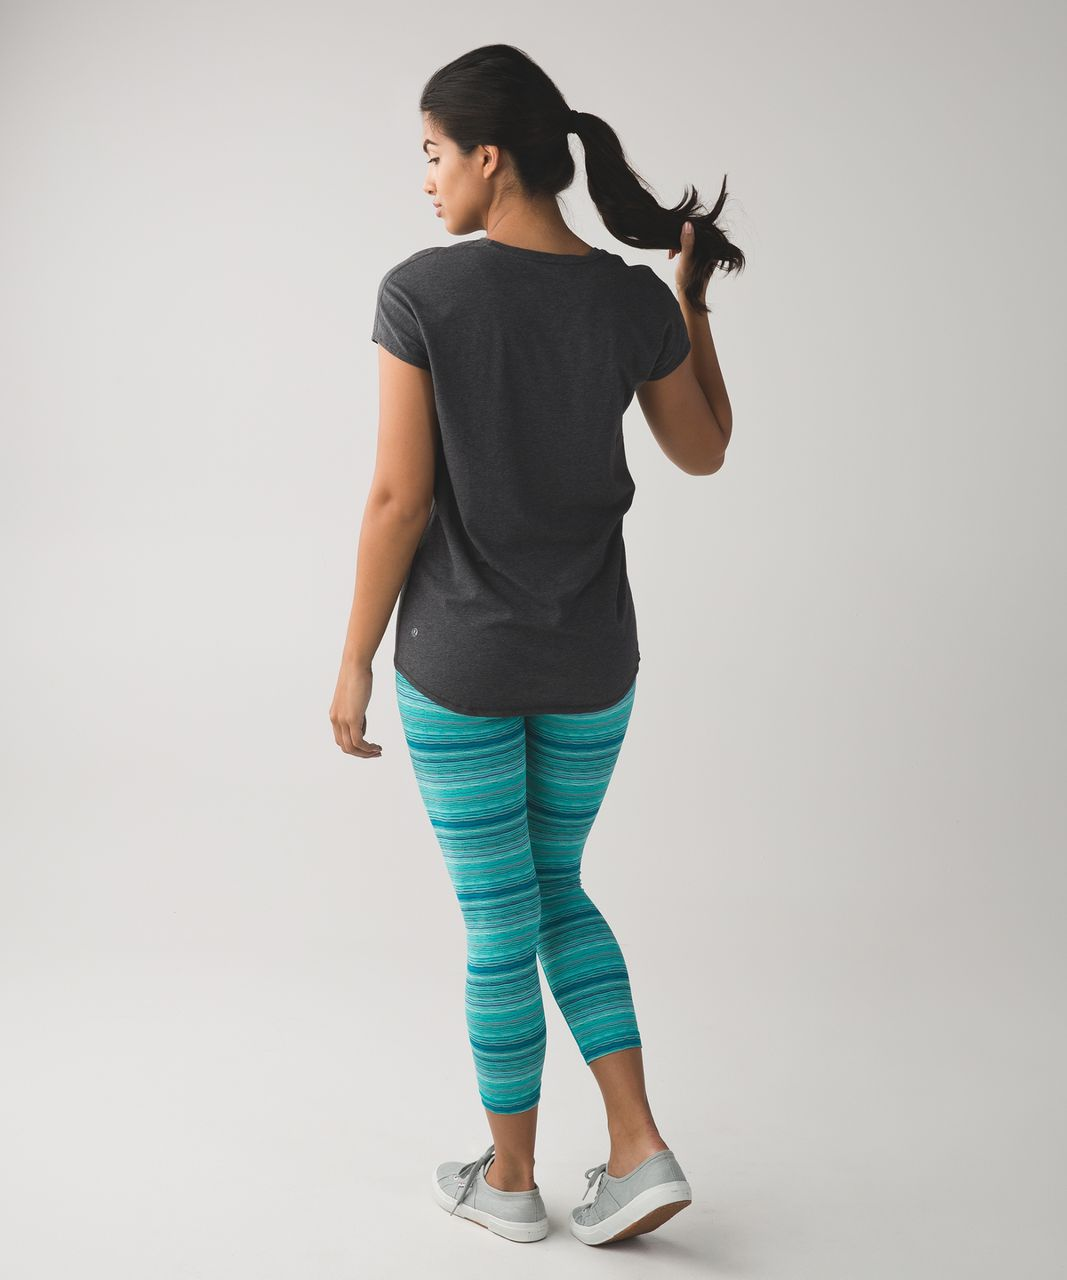 Lululemon Wunder Under Crop (Hi-Rise) *Luxtreme - Space Dye Twist Cosmic Teal Multi